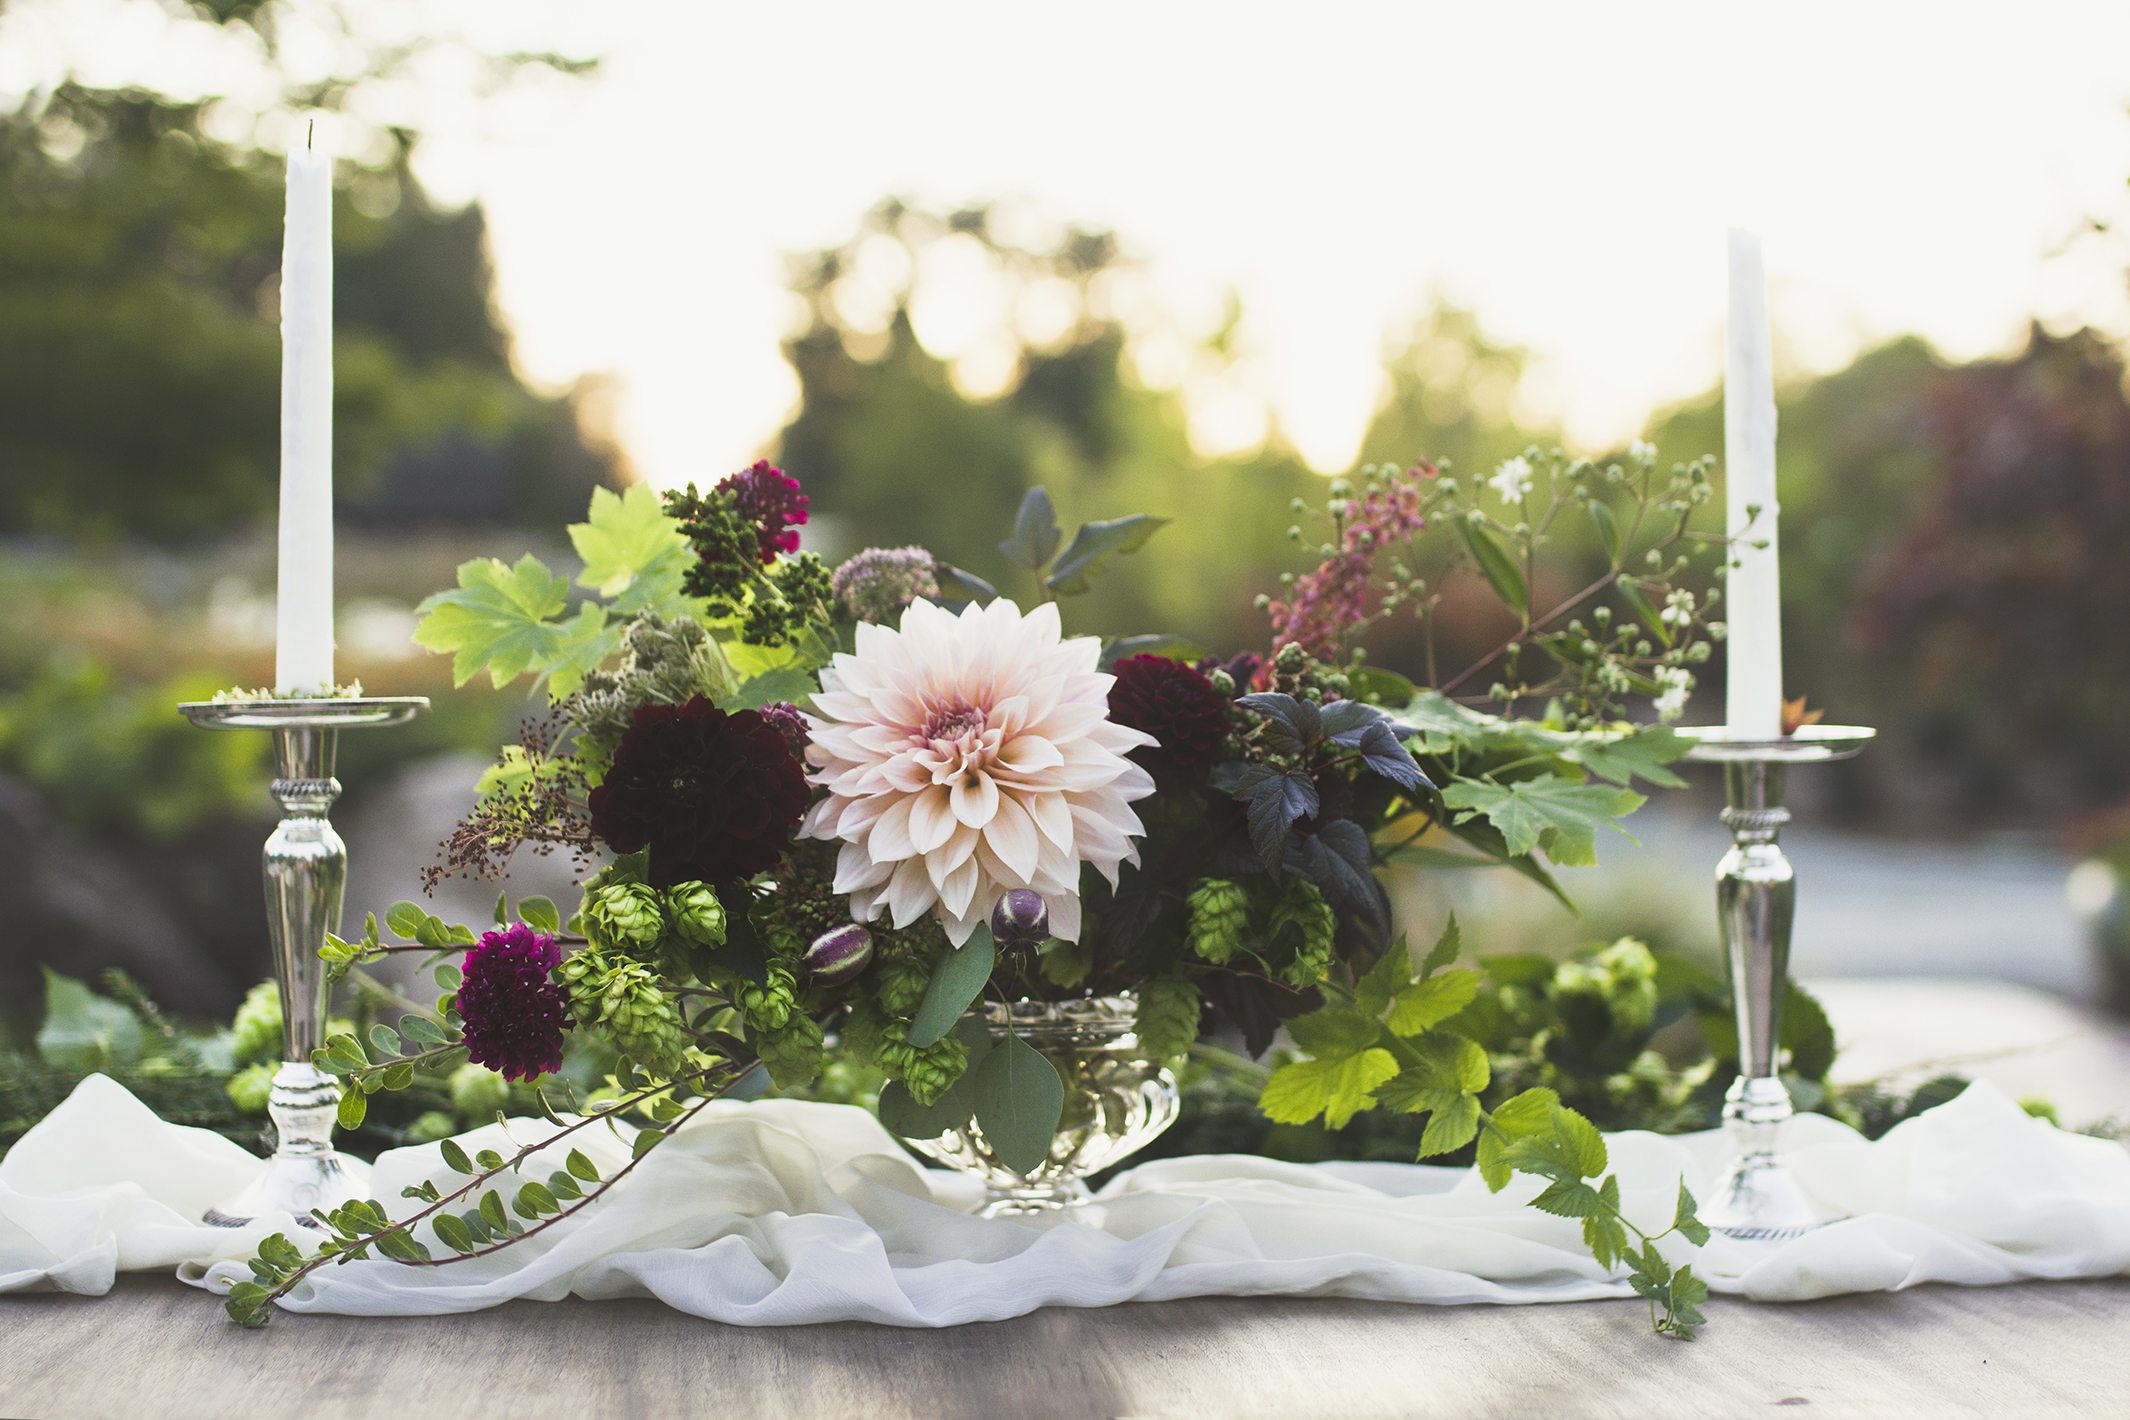 Lush garden inspired arrangements highlights the best of what is growing each season! Flowers by Scattered Seeds… a flower farm